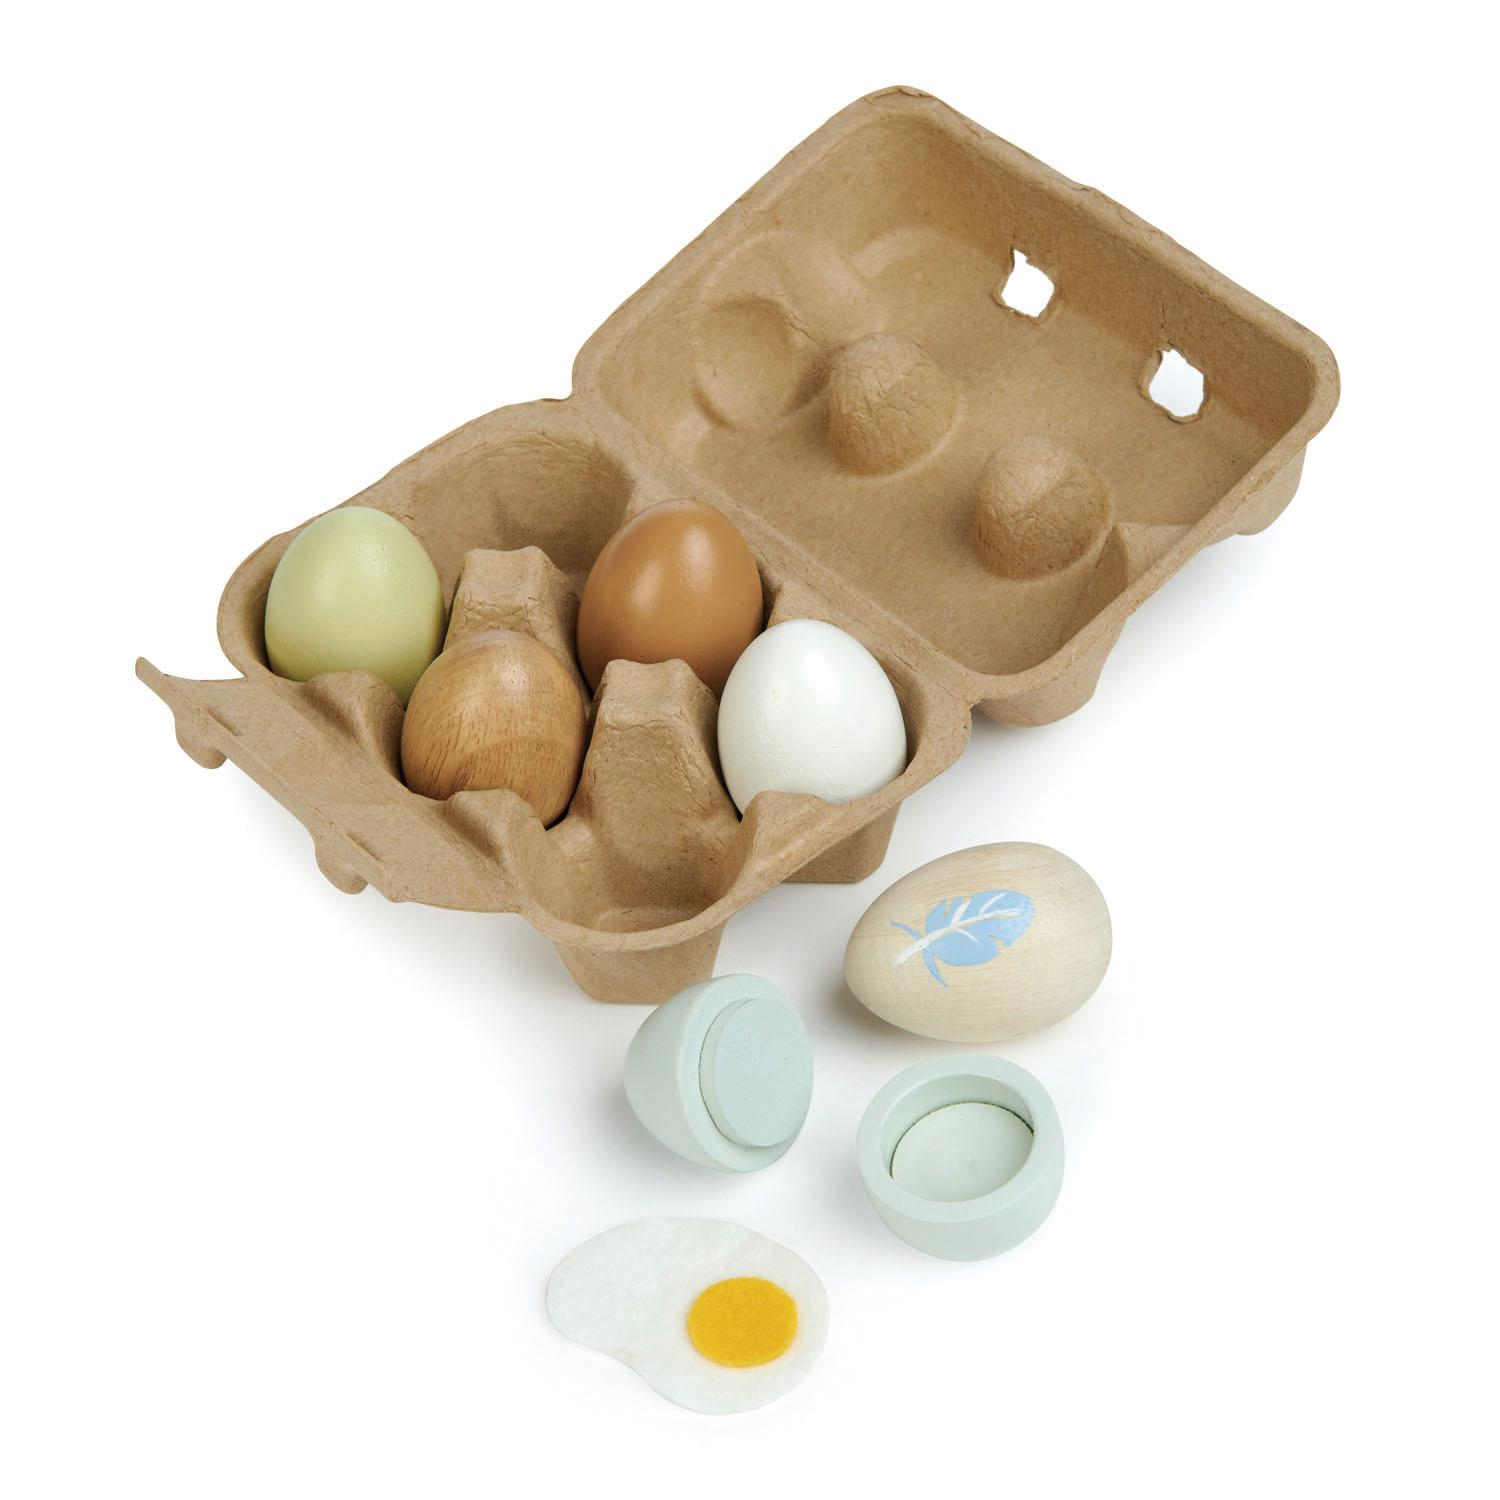 New Authentic Egg Box with 6 Assorted Wooden Play Eggs #4